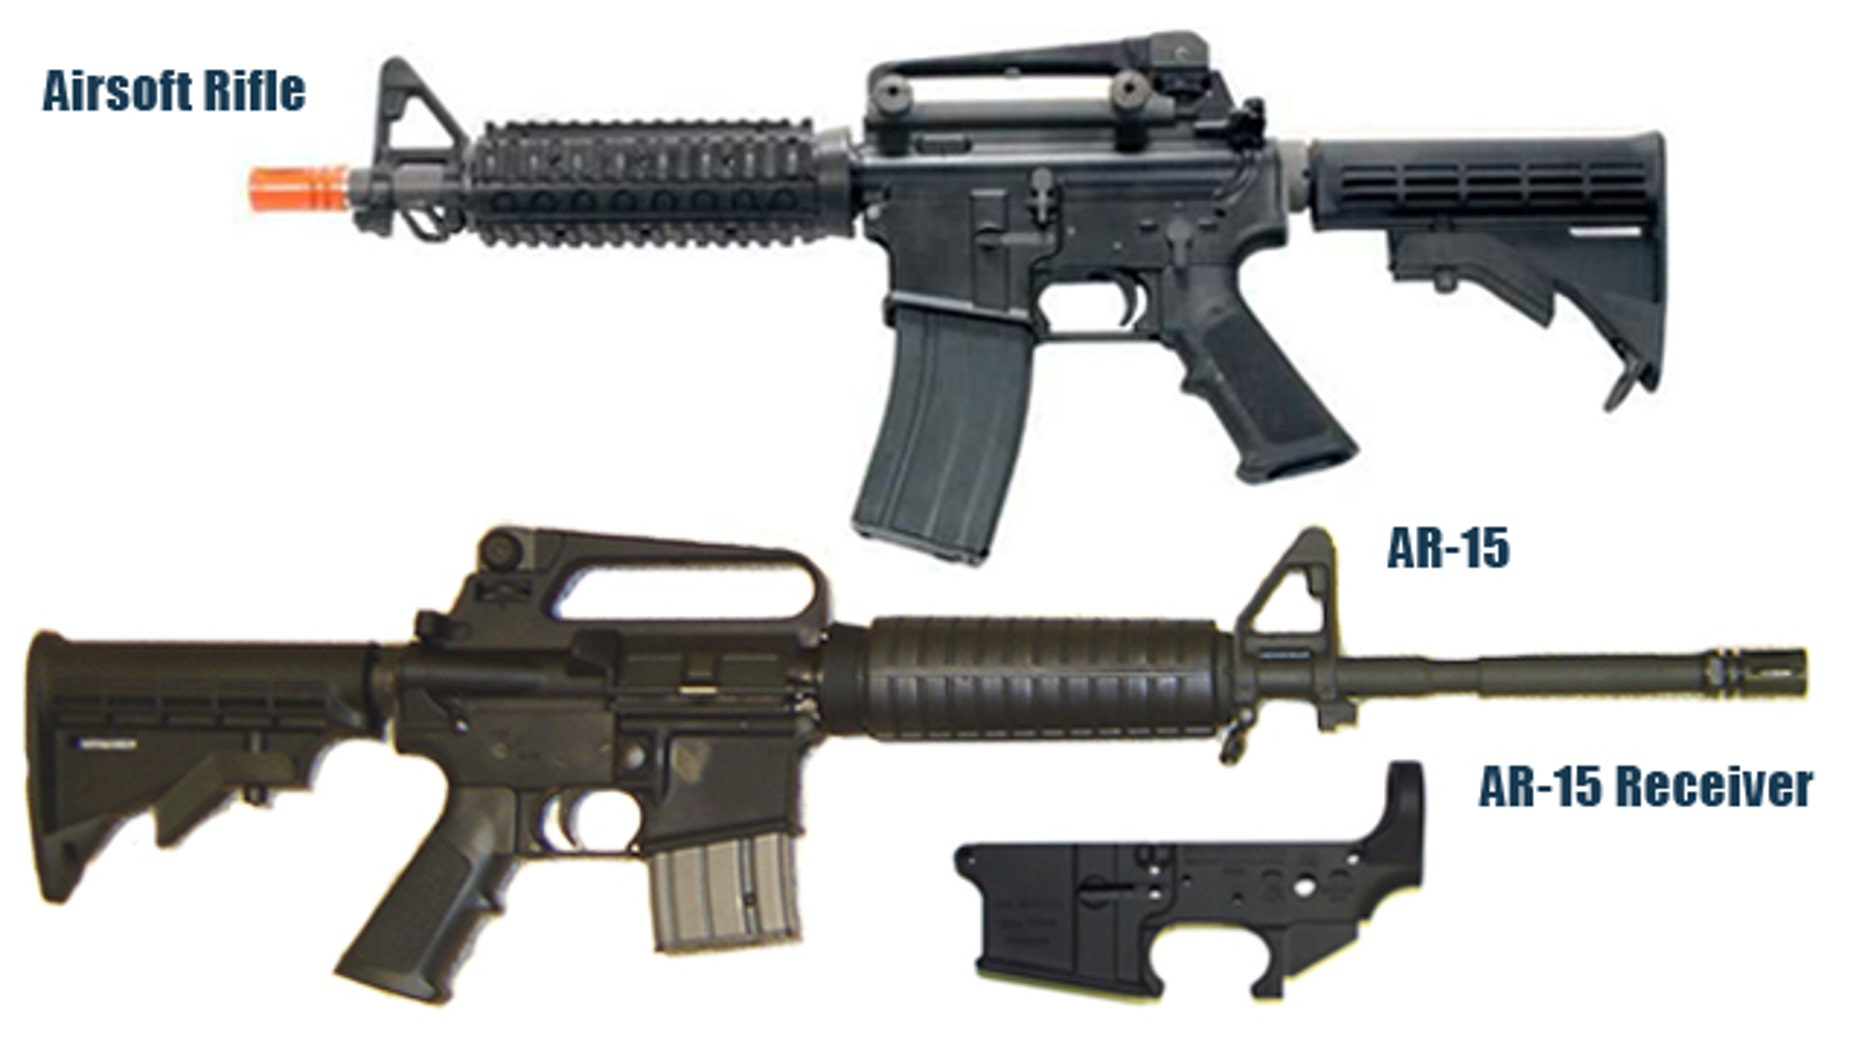 gunspiccopy?ve=1&tl=1?ve=1&tl=1 exclusive toy gun sold in u s can easily be converted to the real